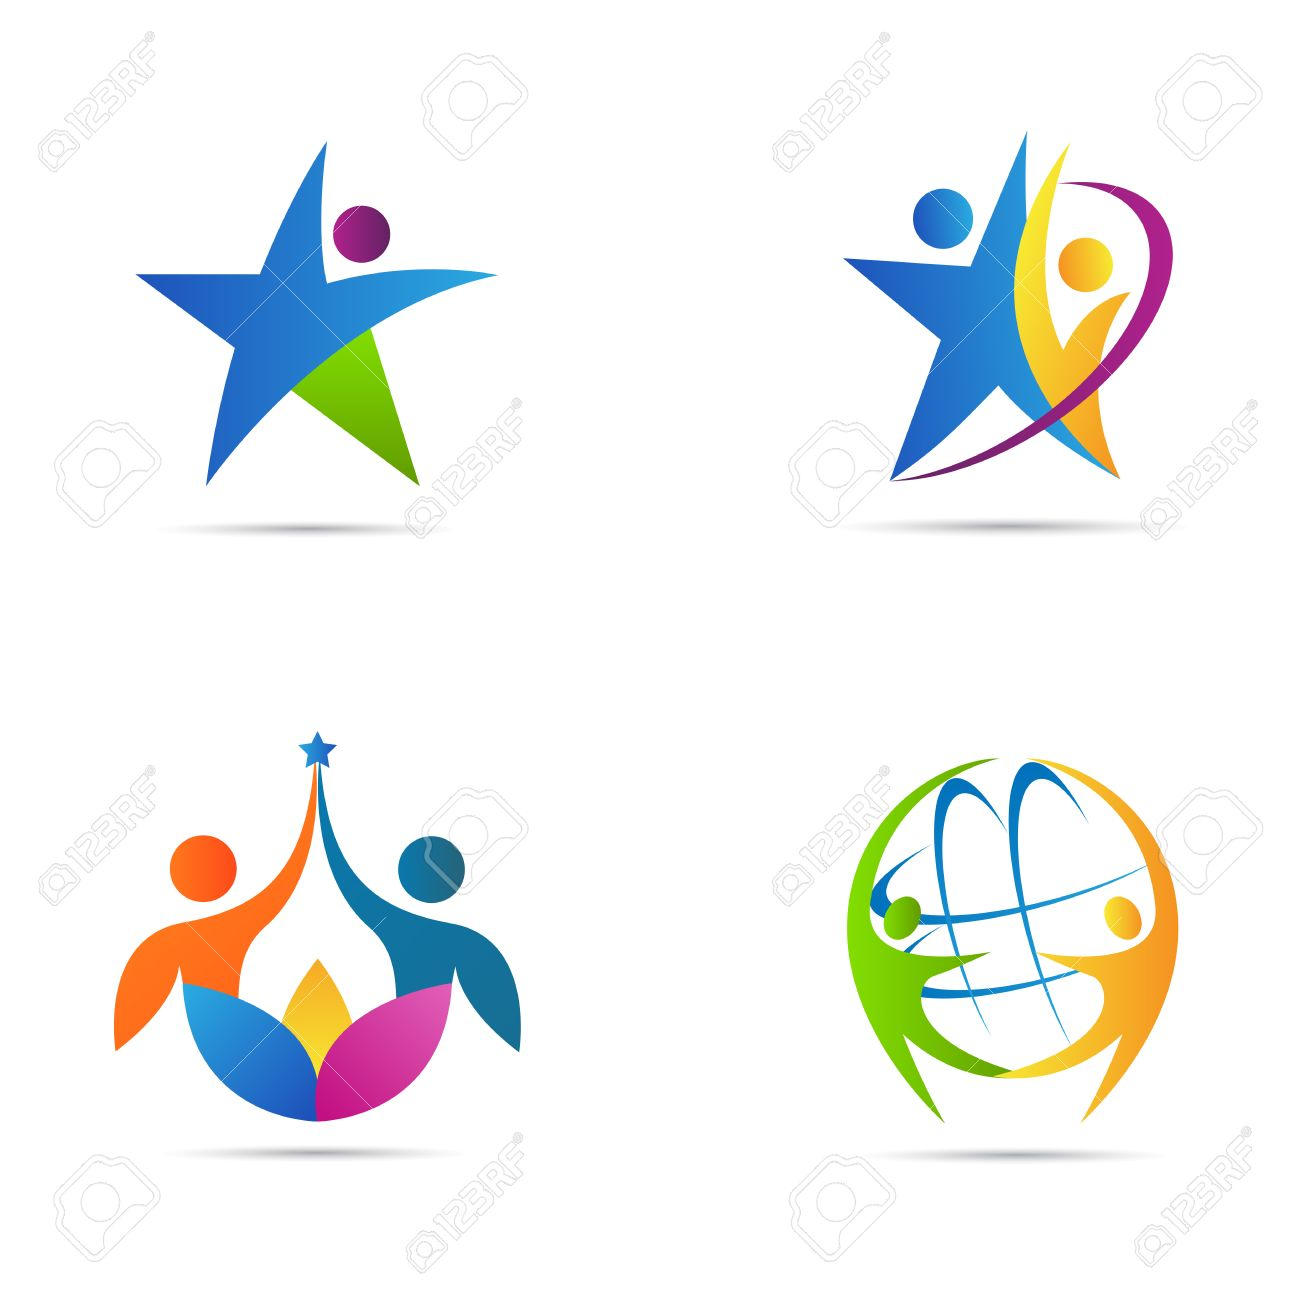 people logos vector design represents fitness and business icon rh 123rf com logo vector clipart logo vector art